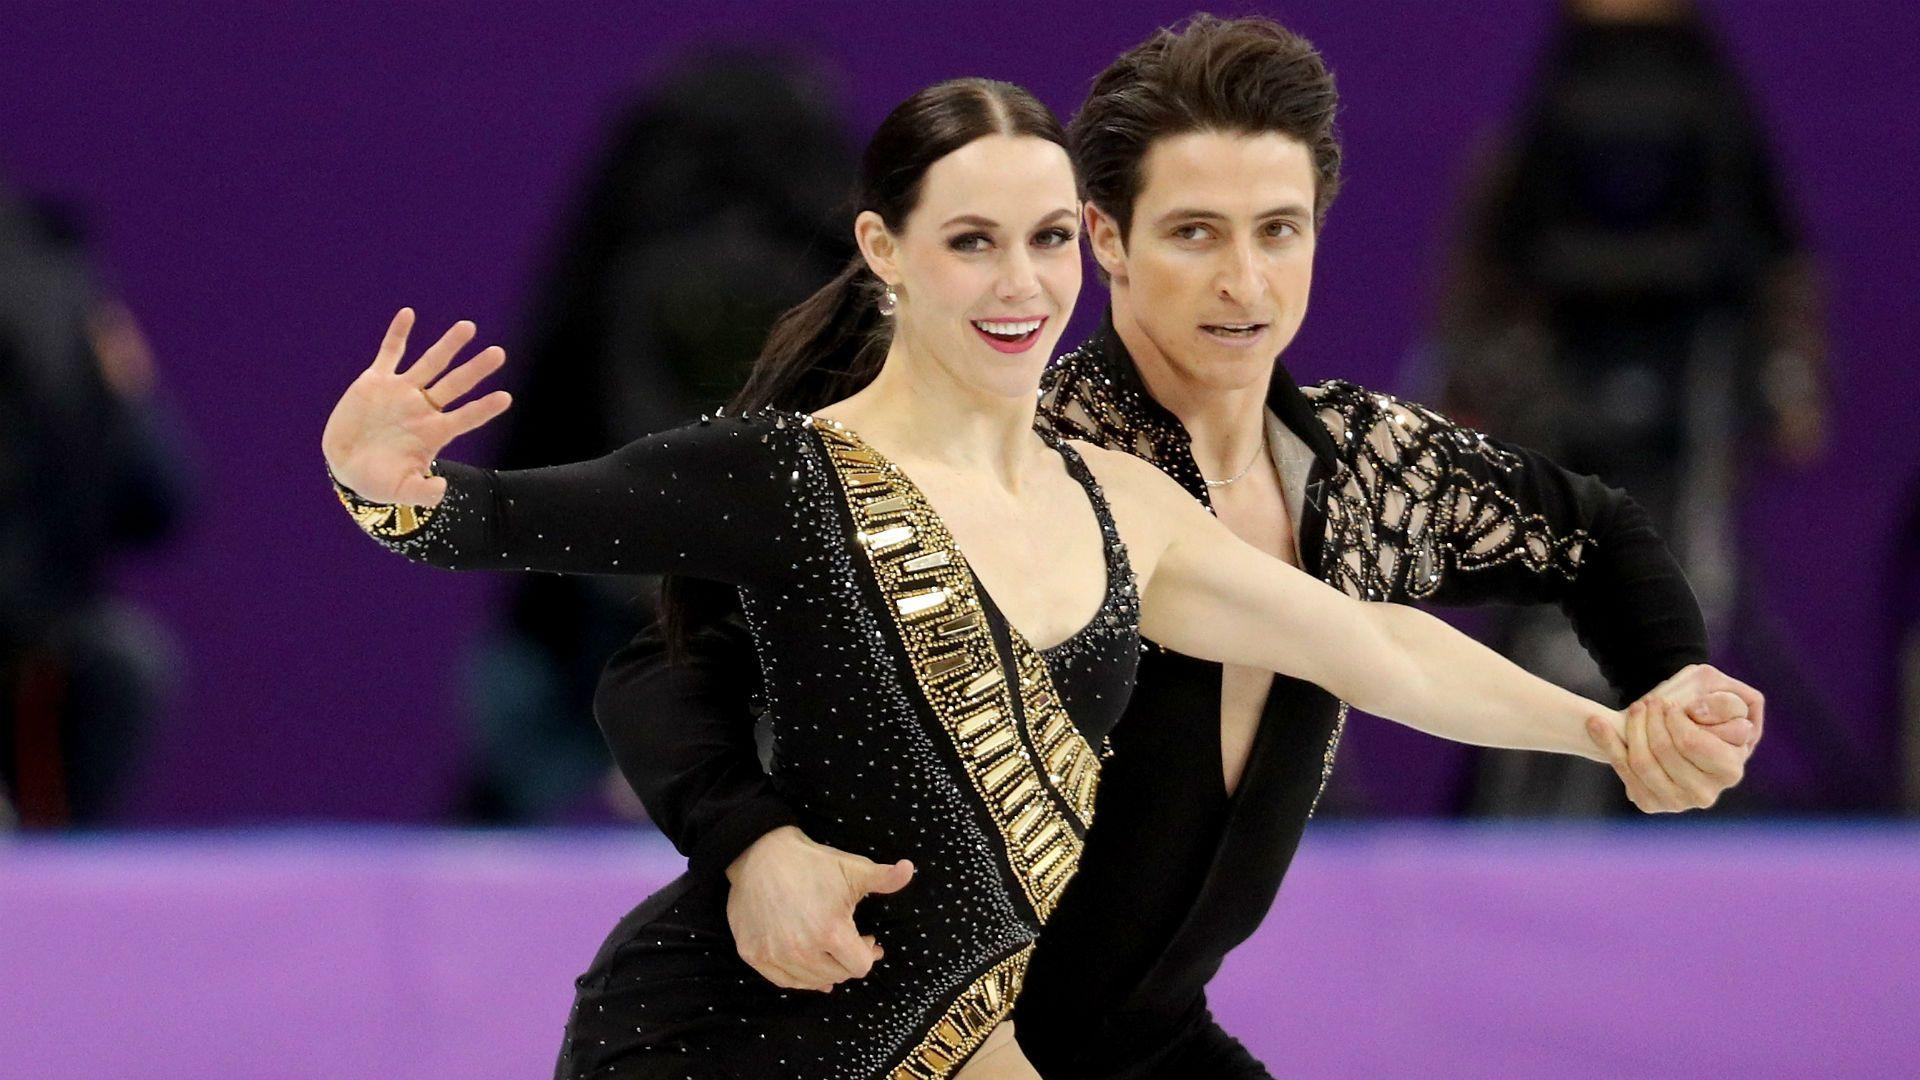 Winter Olympics 2018: Virtue, Moir help Canada hold lead in team ...